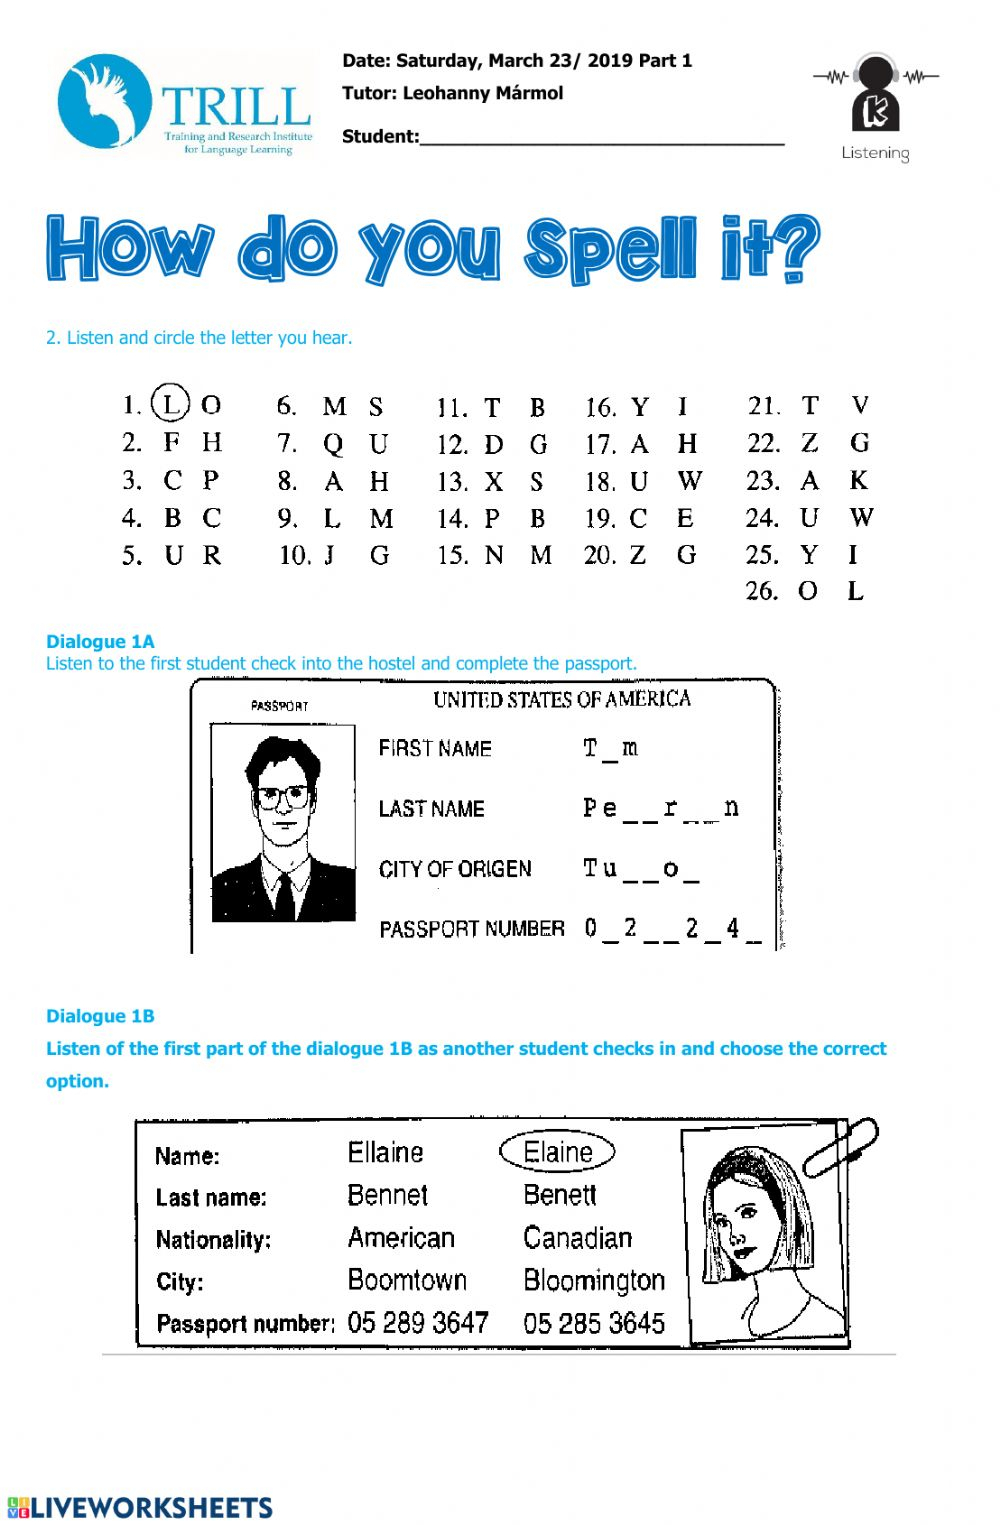 Listening Spelling Alphabet - Interactive Worksheet for Alphabet Spelling Worksheets